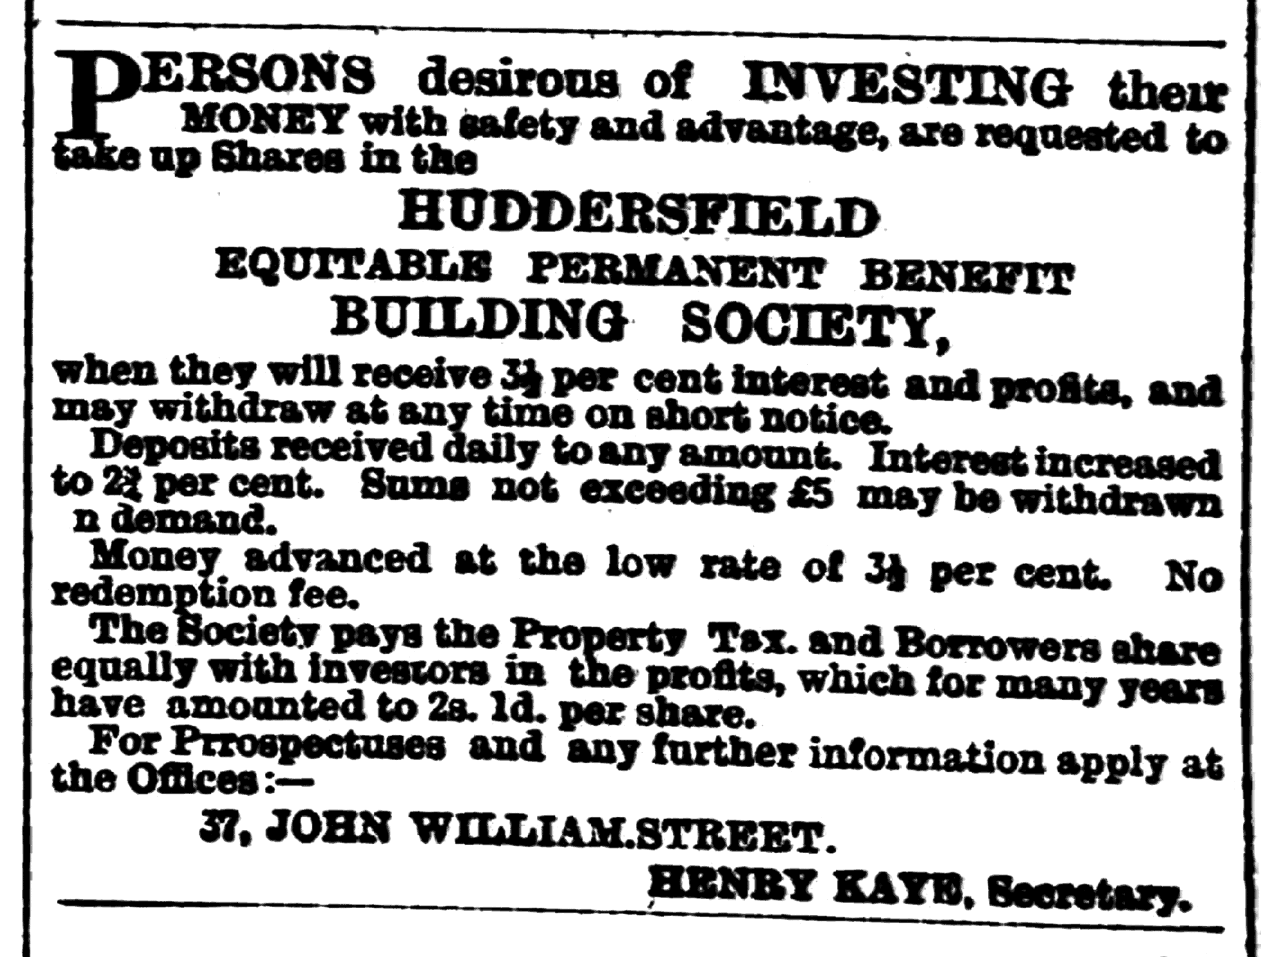 Huddersfield Chronicle 11 August 1900 Huddersfield Equitable Permanent Benefit Building Society.png